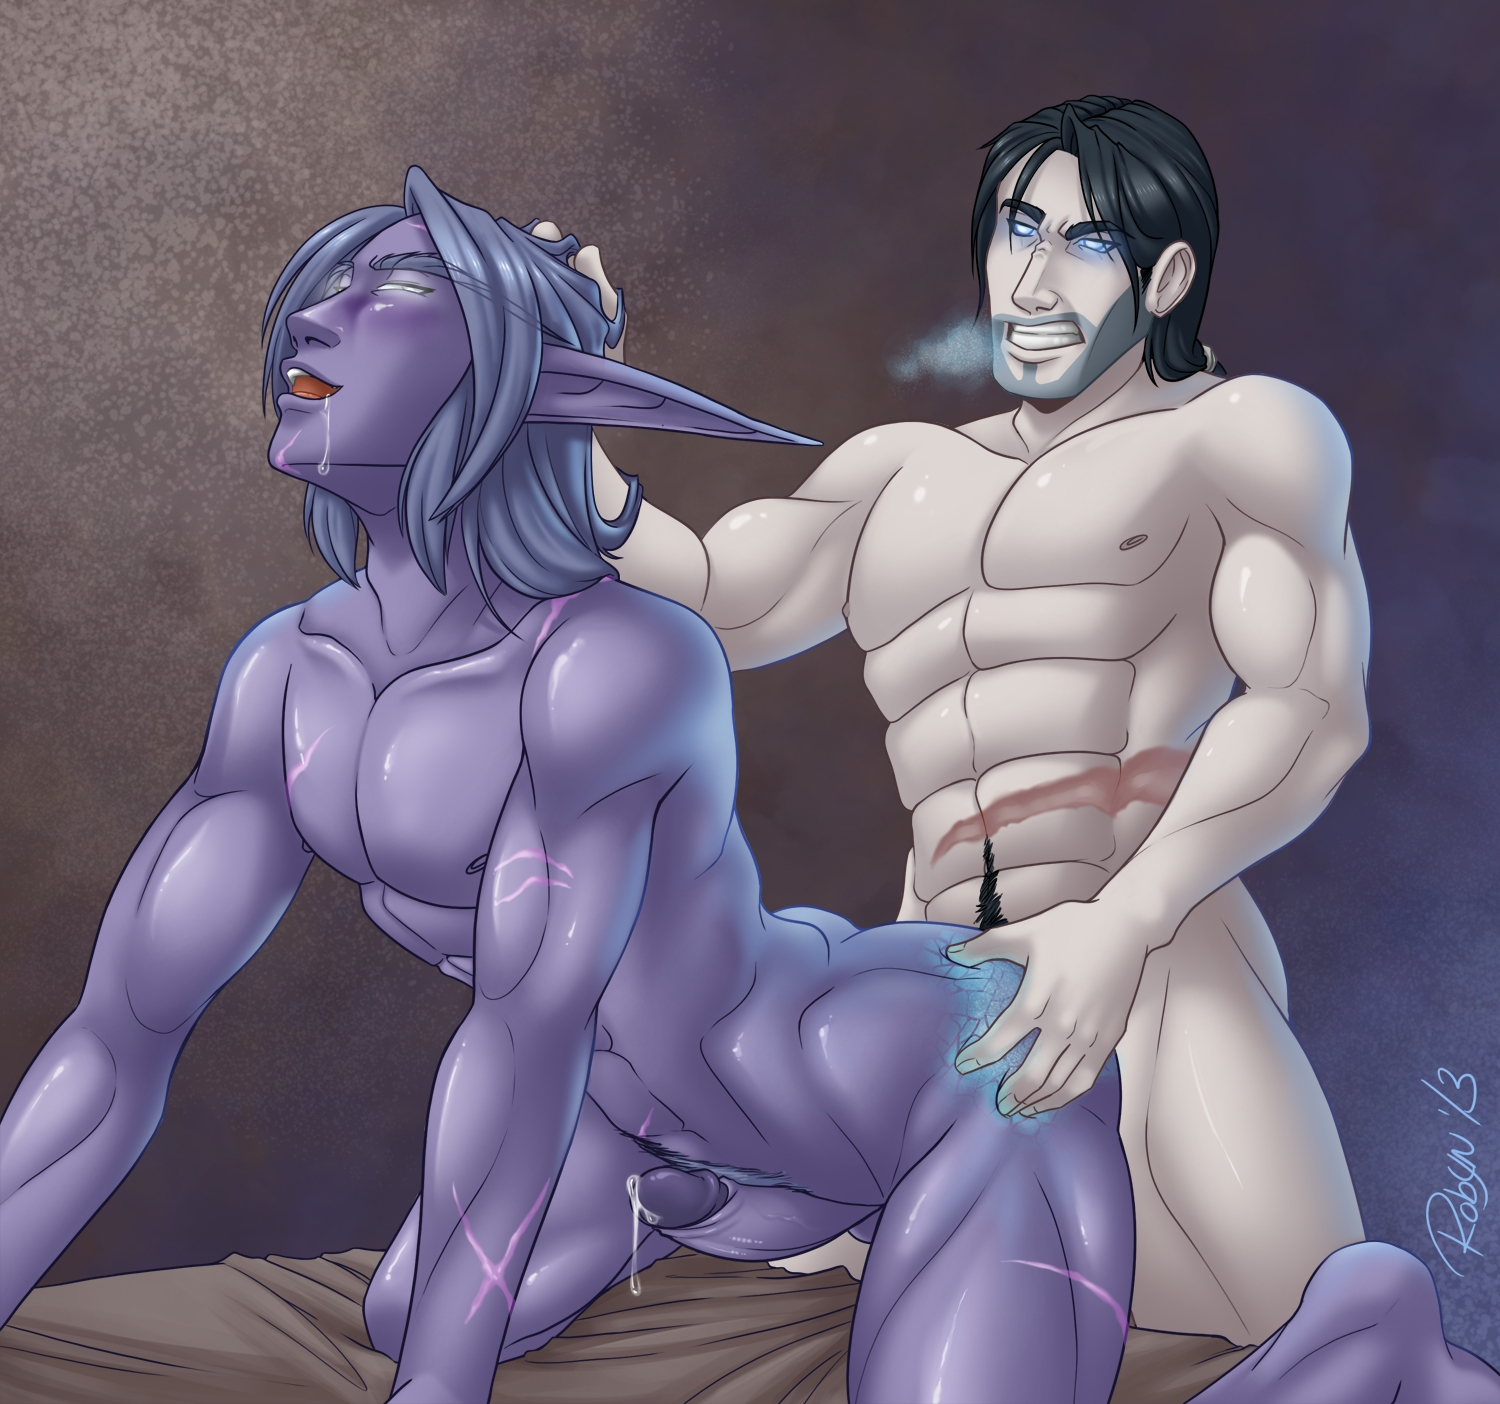 World of warcraft gay sucking worgen dick nsfw tube